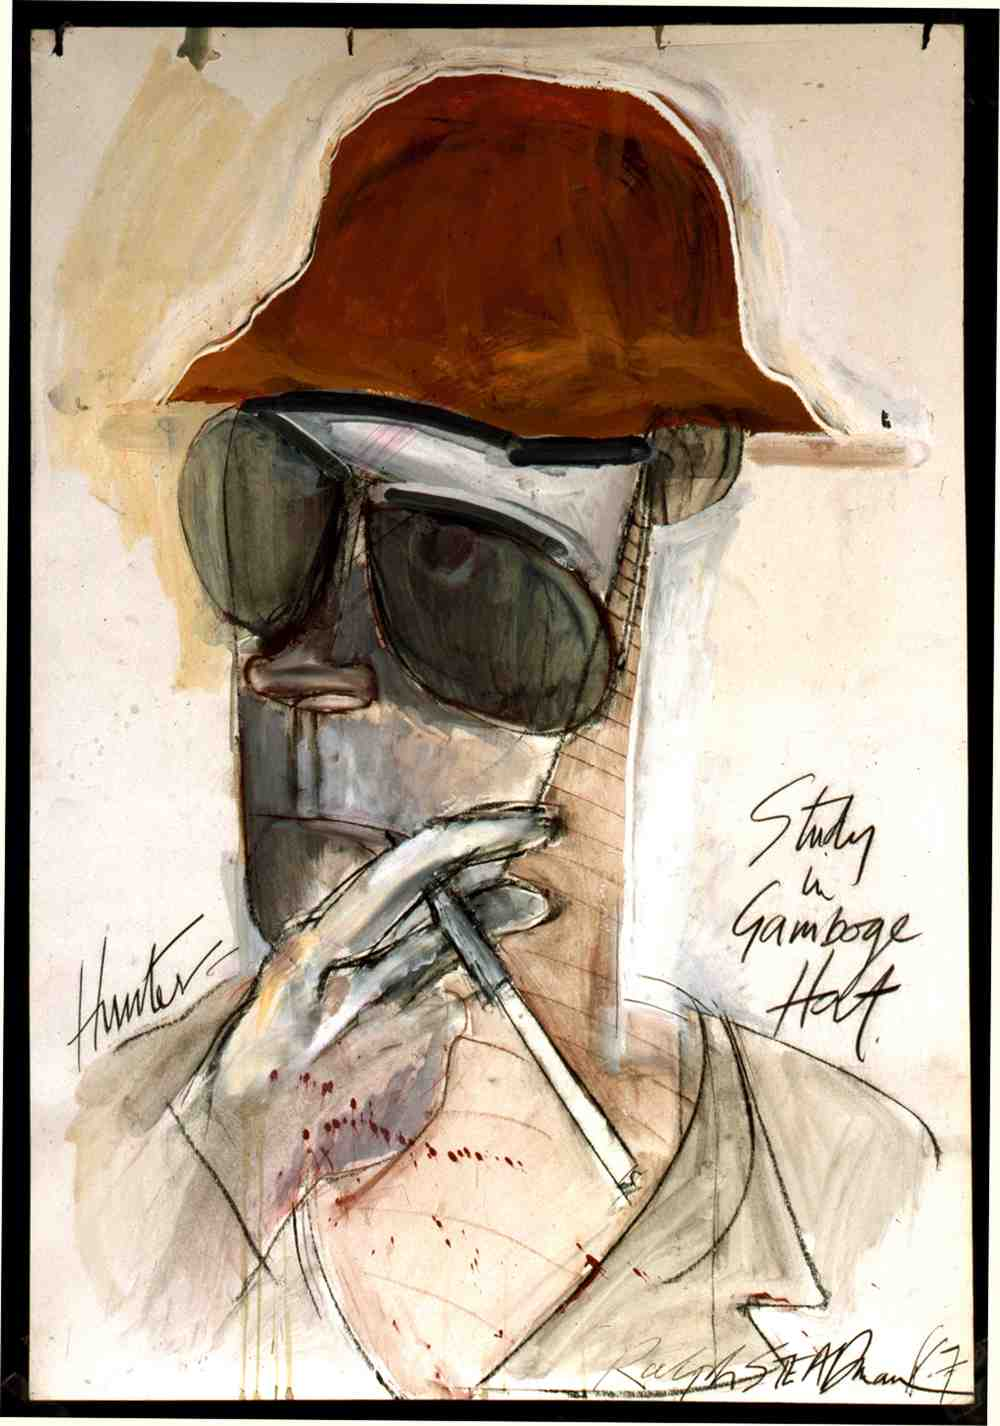 Hunter -- Study in a Gamboge Hat, by Ralph Steadman, courtesy of the artist. The 1987 portrait was drawn the year the author turned 50, and marked the only time Thompson 'sat' for a series of formal portraits by the artist.